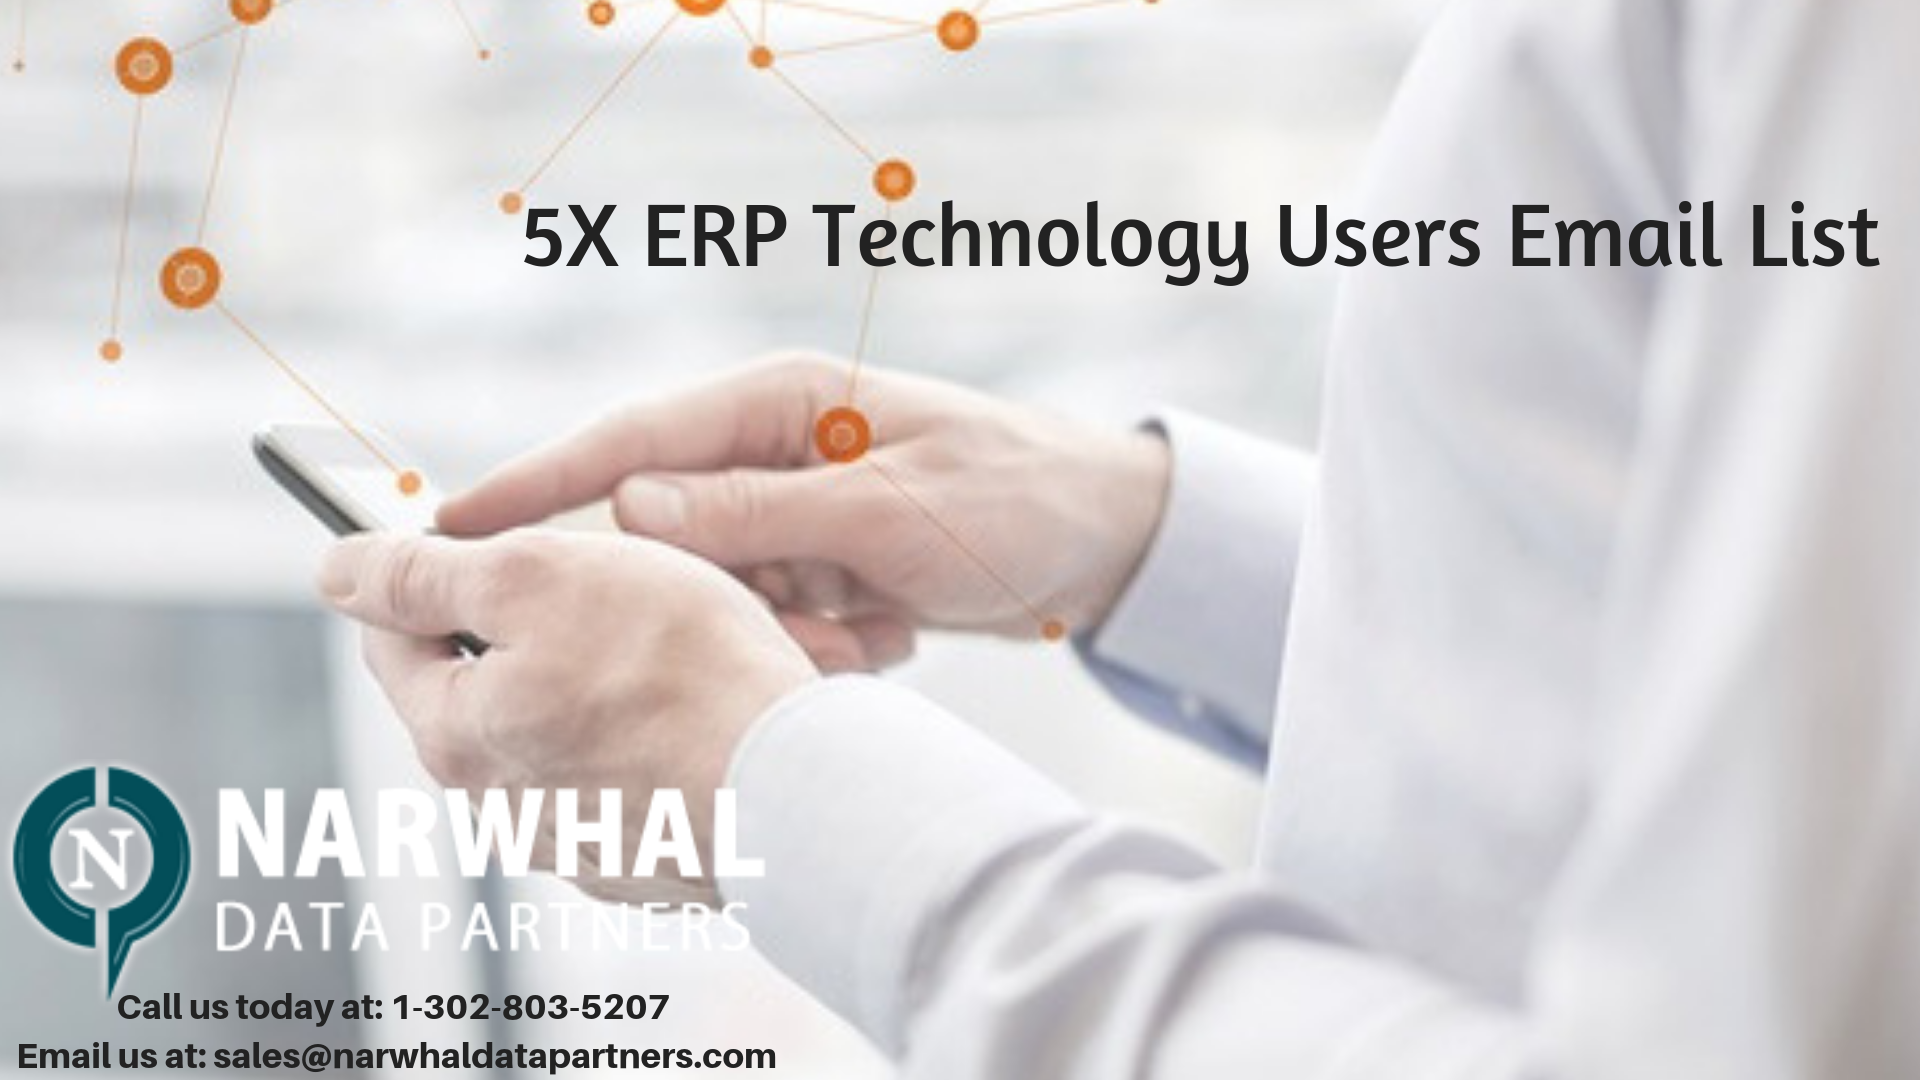 http://narwhaldatapartners.com/5x-erp-technology-users-email-list.html